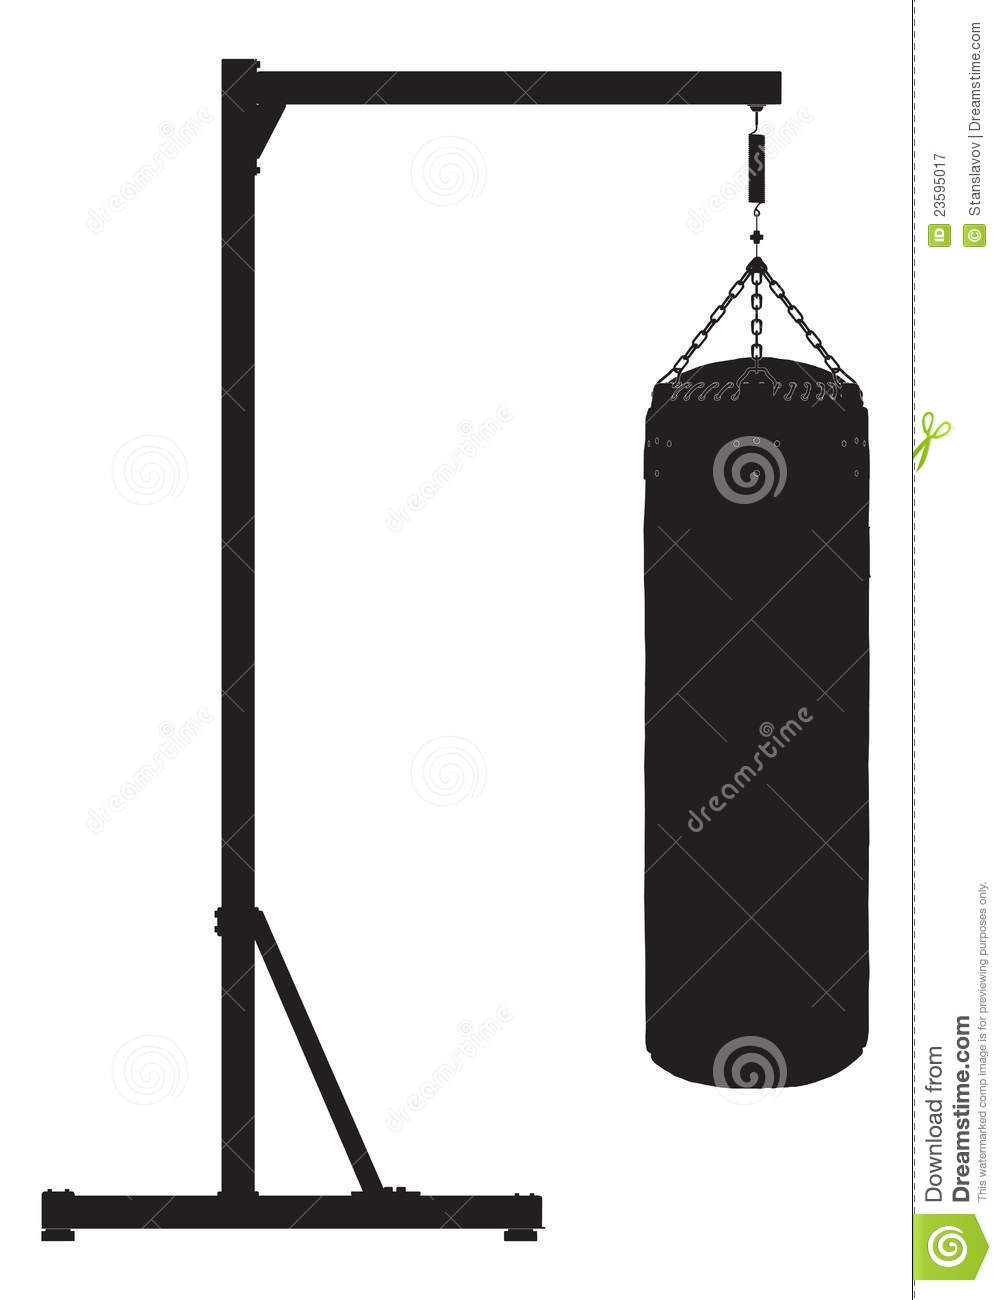 Punch Bag Outline Silhouette Royalty Free Stock